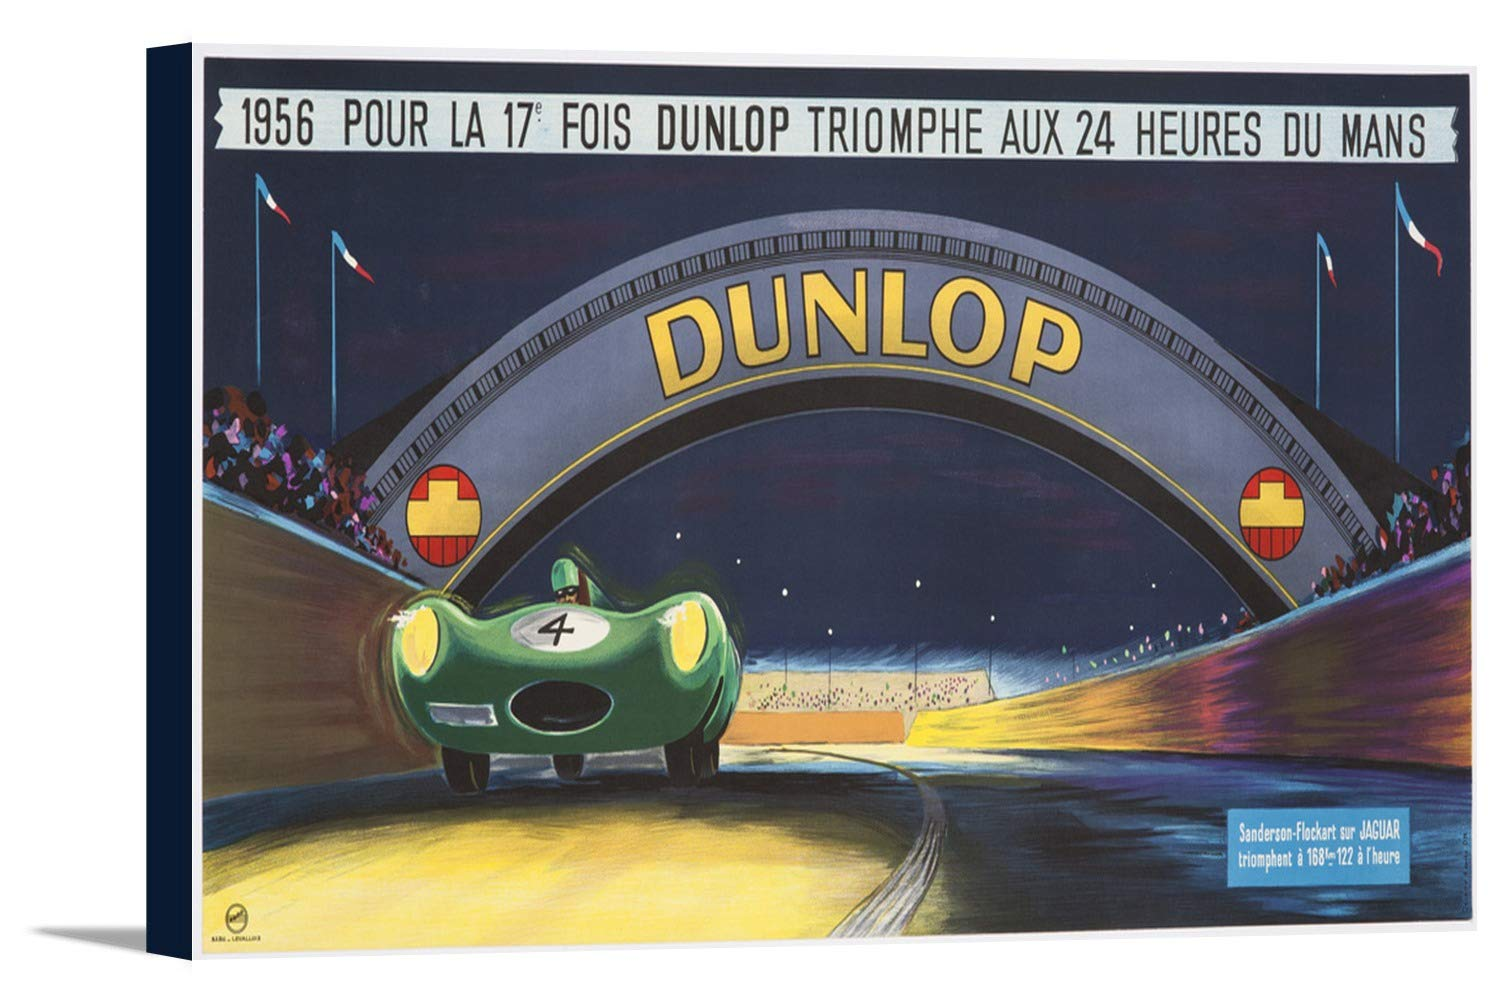 Dunlop – 24 HEURES DE MANSヴィンテージポスター(アーティスト: Delarue nouvelliere )フランスC。1956 36 x 18 1/2 Gallery Canvas LANT-3P-SC-58955-24x36 36 x 18 1/2 Gallery Canvas  B0184AVDCQ